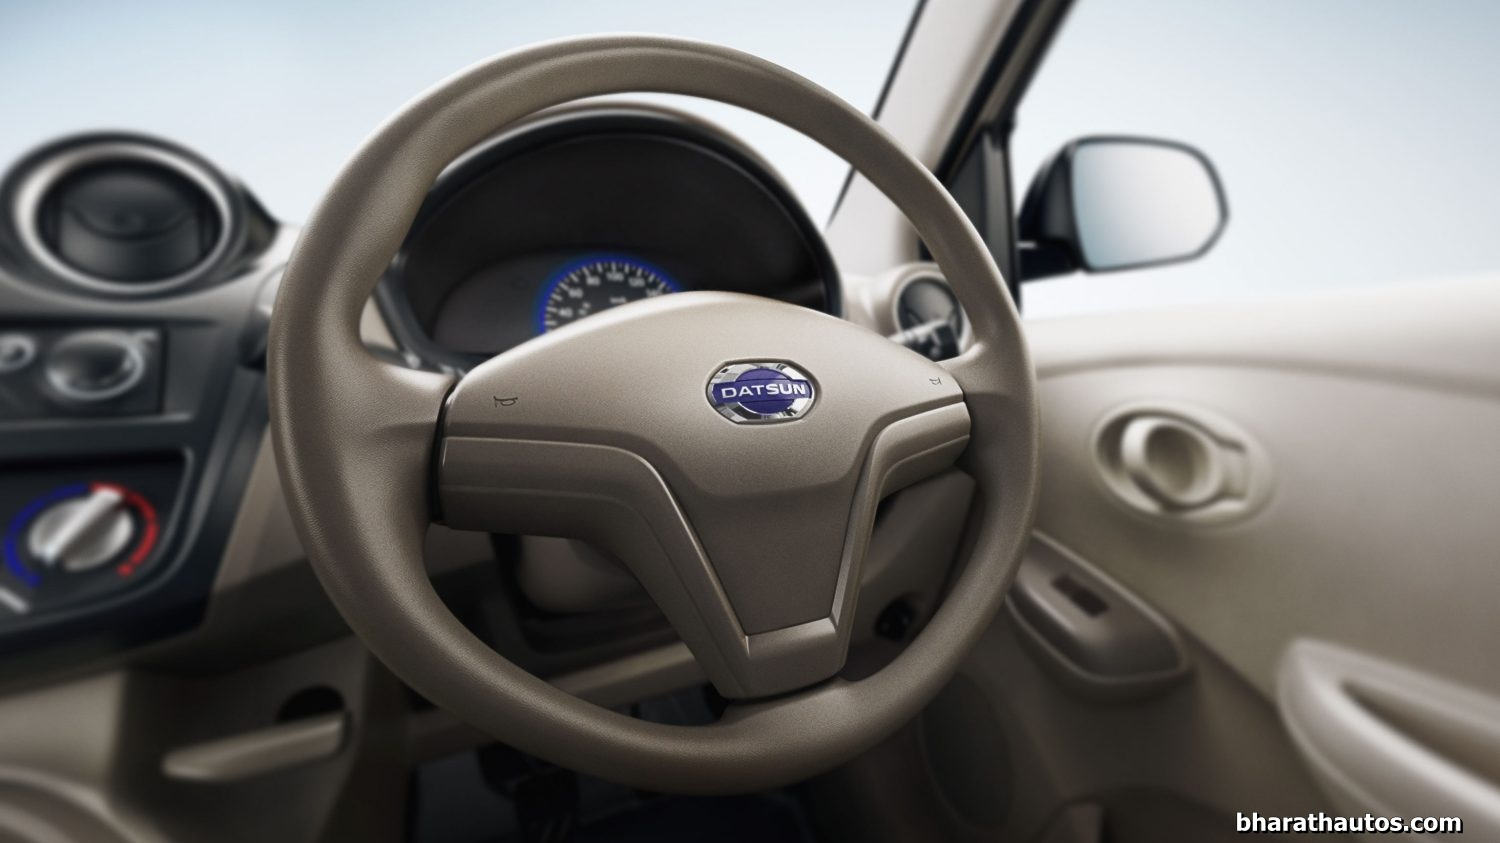 Datsun GO+ 7-Seater MPV launched in India at Rs. 3.79 lakh